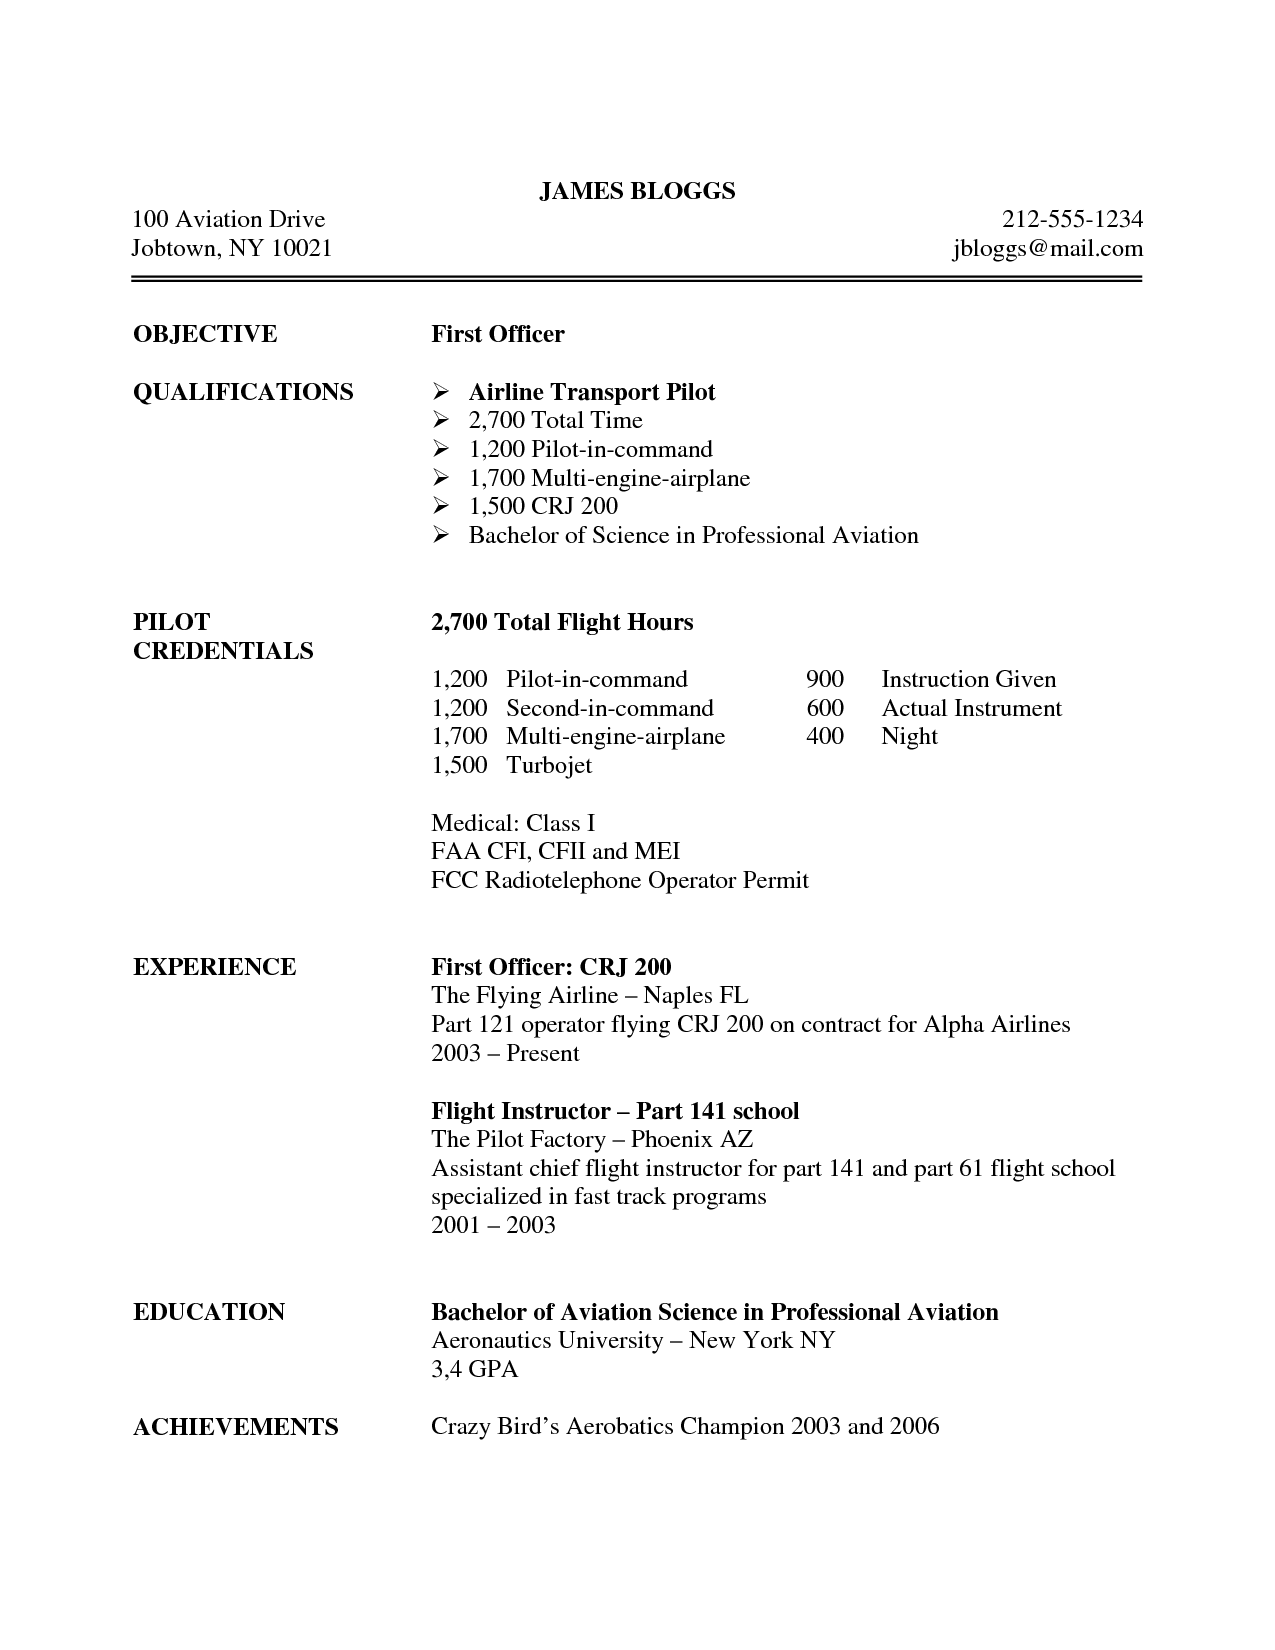 Professional Pilot Resume | Professional Pilot Resume   DOC Idea Airline Pilot Resume